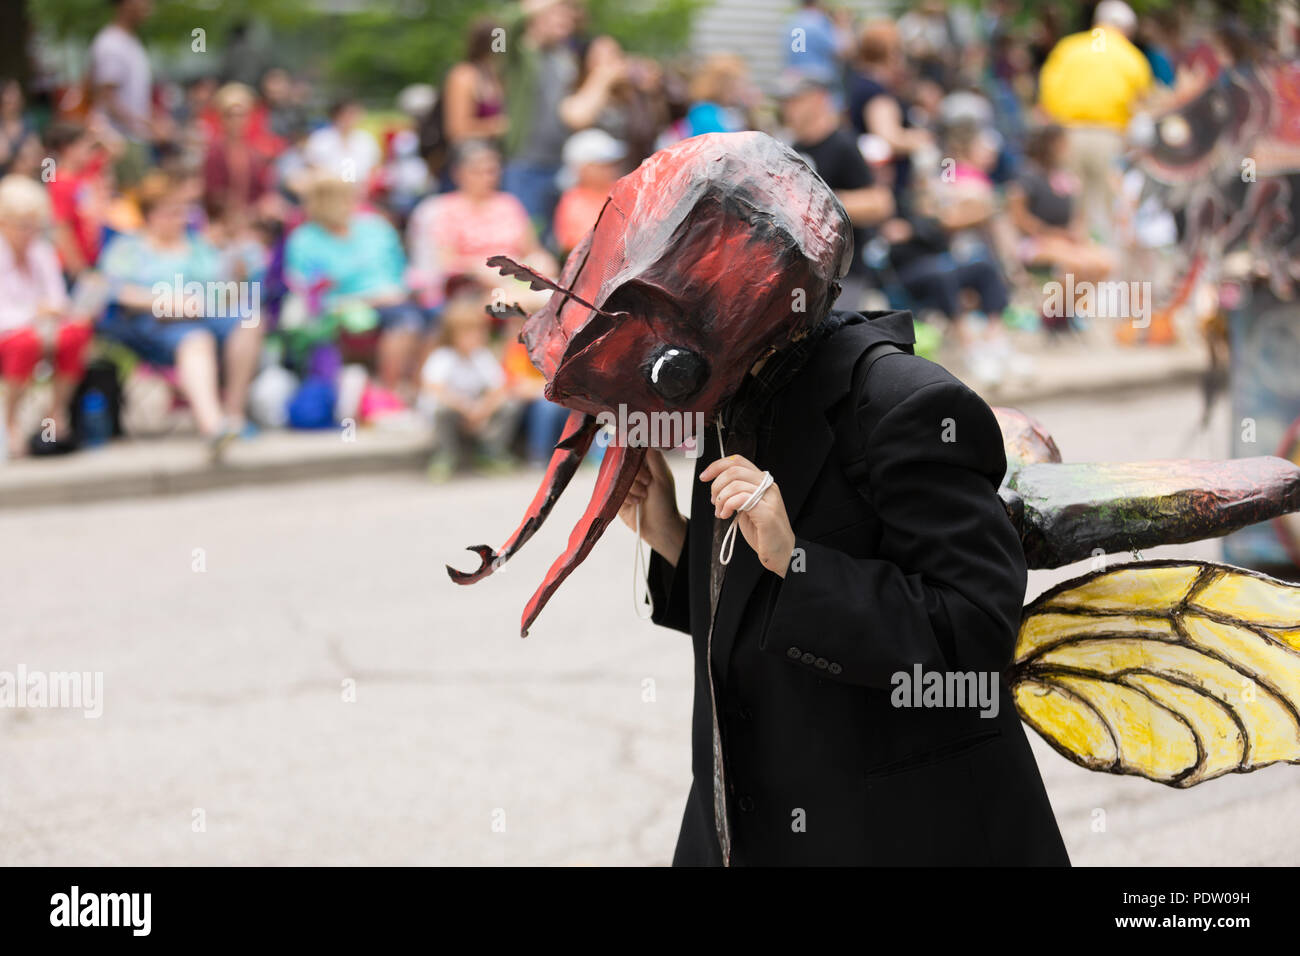 Cleveland, Ohio, USA - June 9, 2018 man dress up as an ant At the abstract art festival Parade The Circle Stock Photo